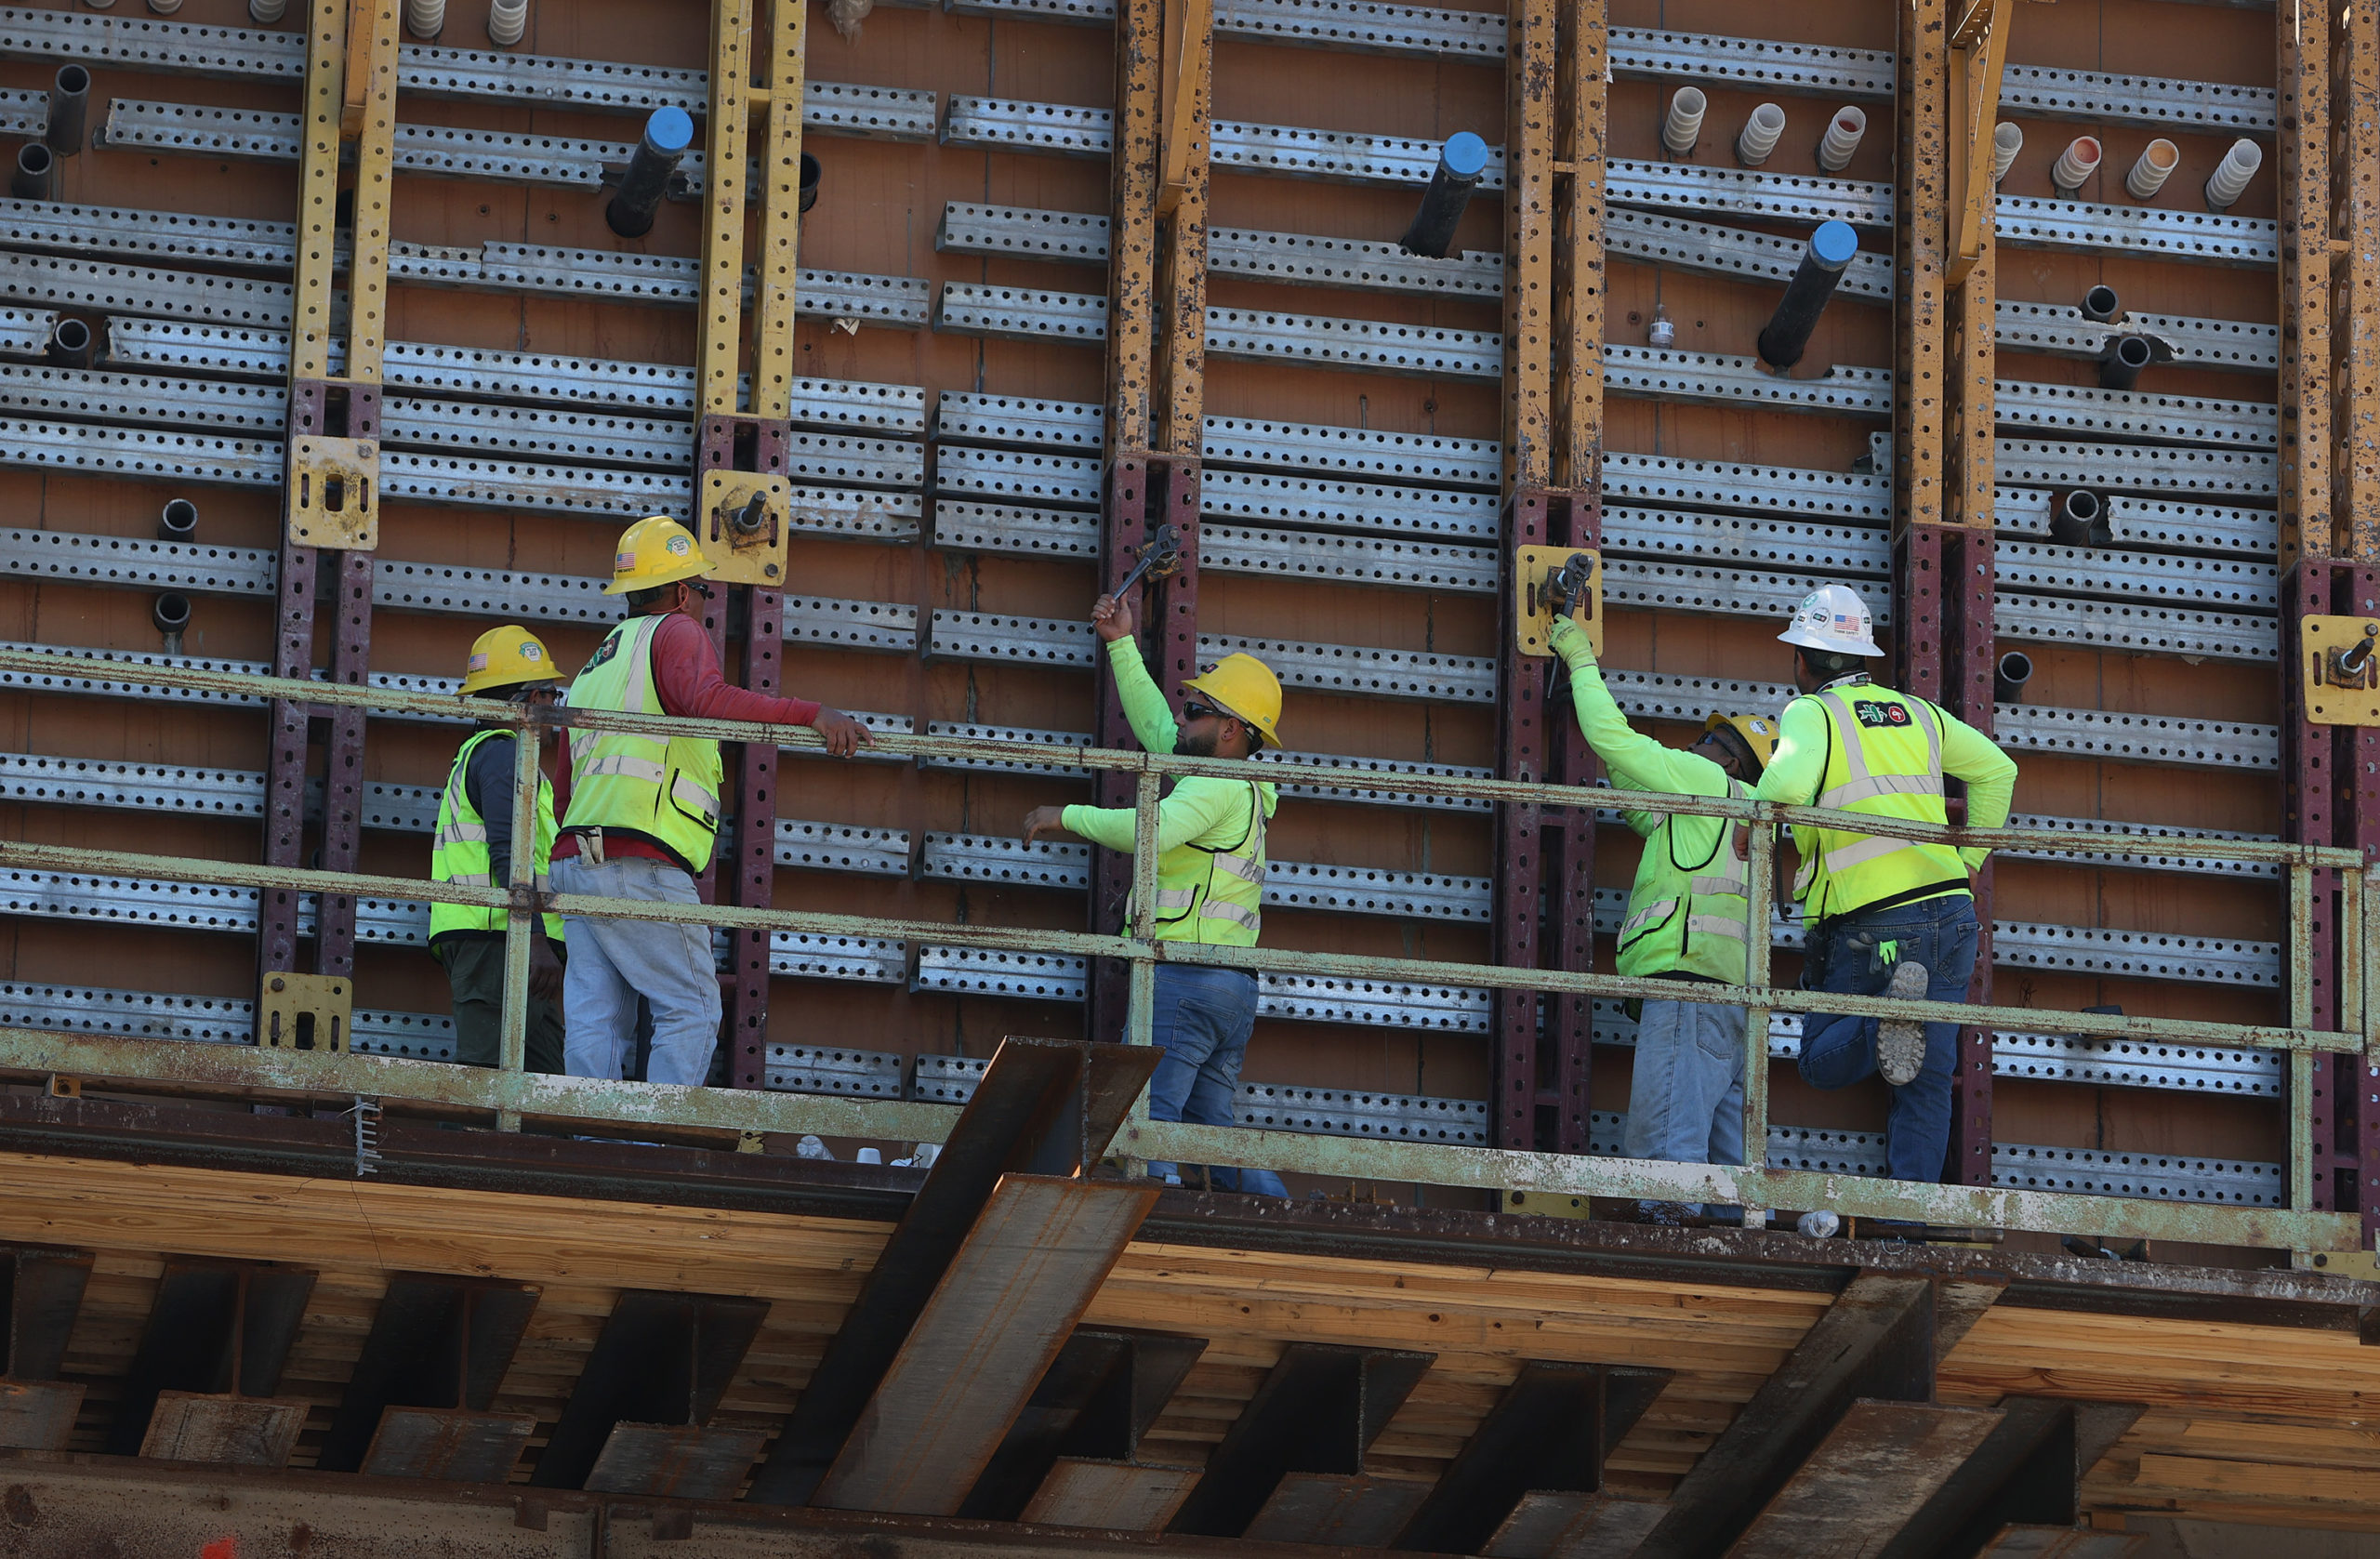 Construction workers at a Miami, Florida job site on April 13. (Joe Raedle/Getty Images)